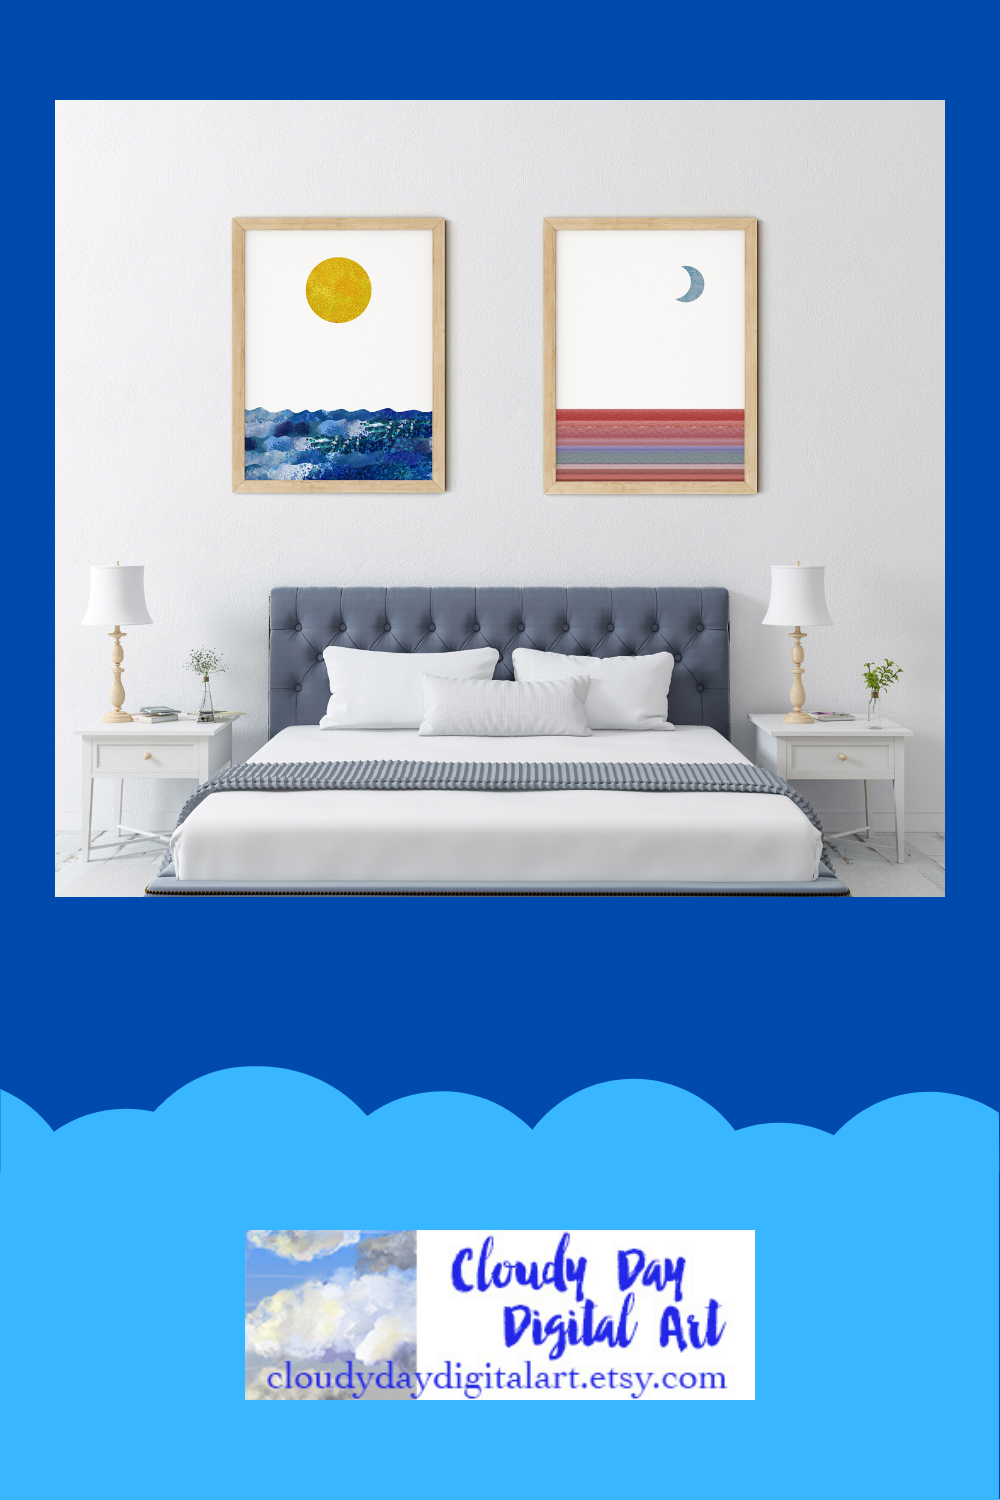 Colorful Wall Art For Bedroom In 2020 Colorful Wall Art Bedroom Wall Art Bedroom Art